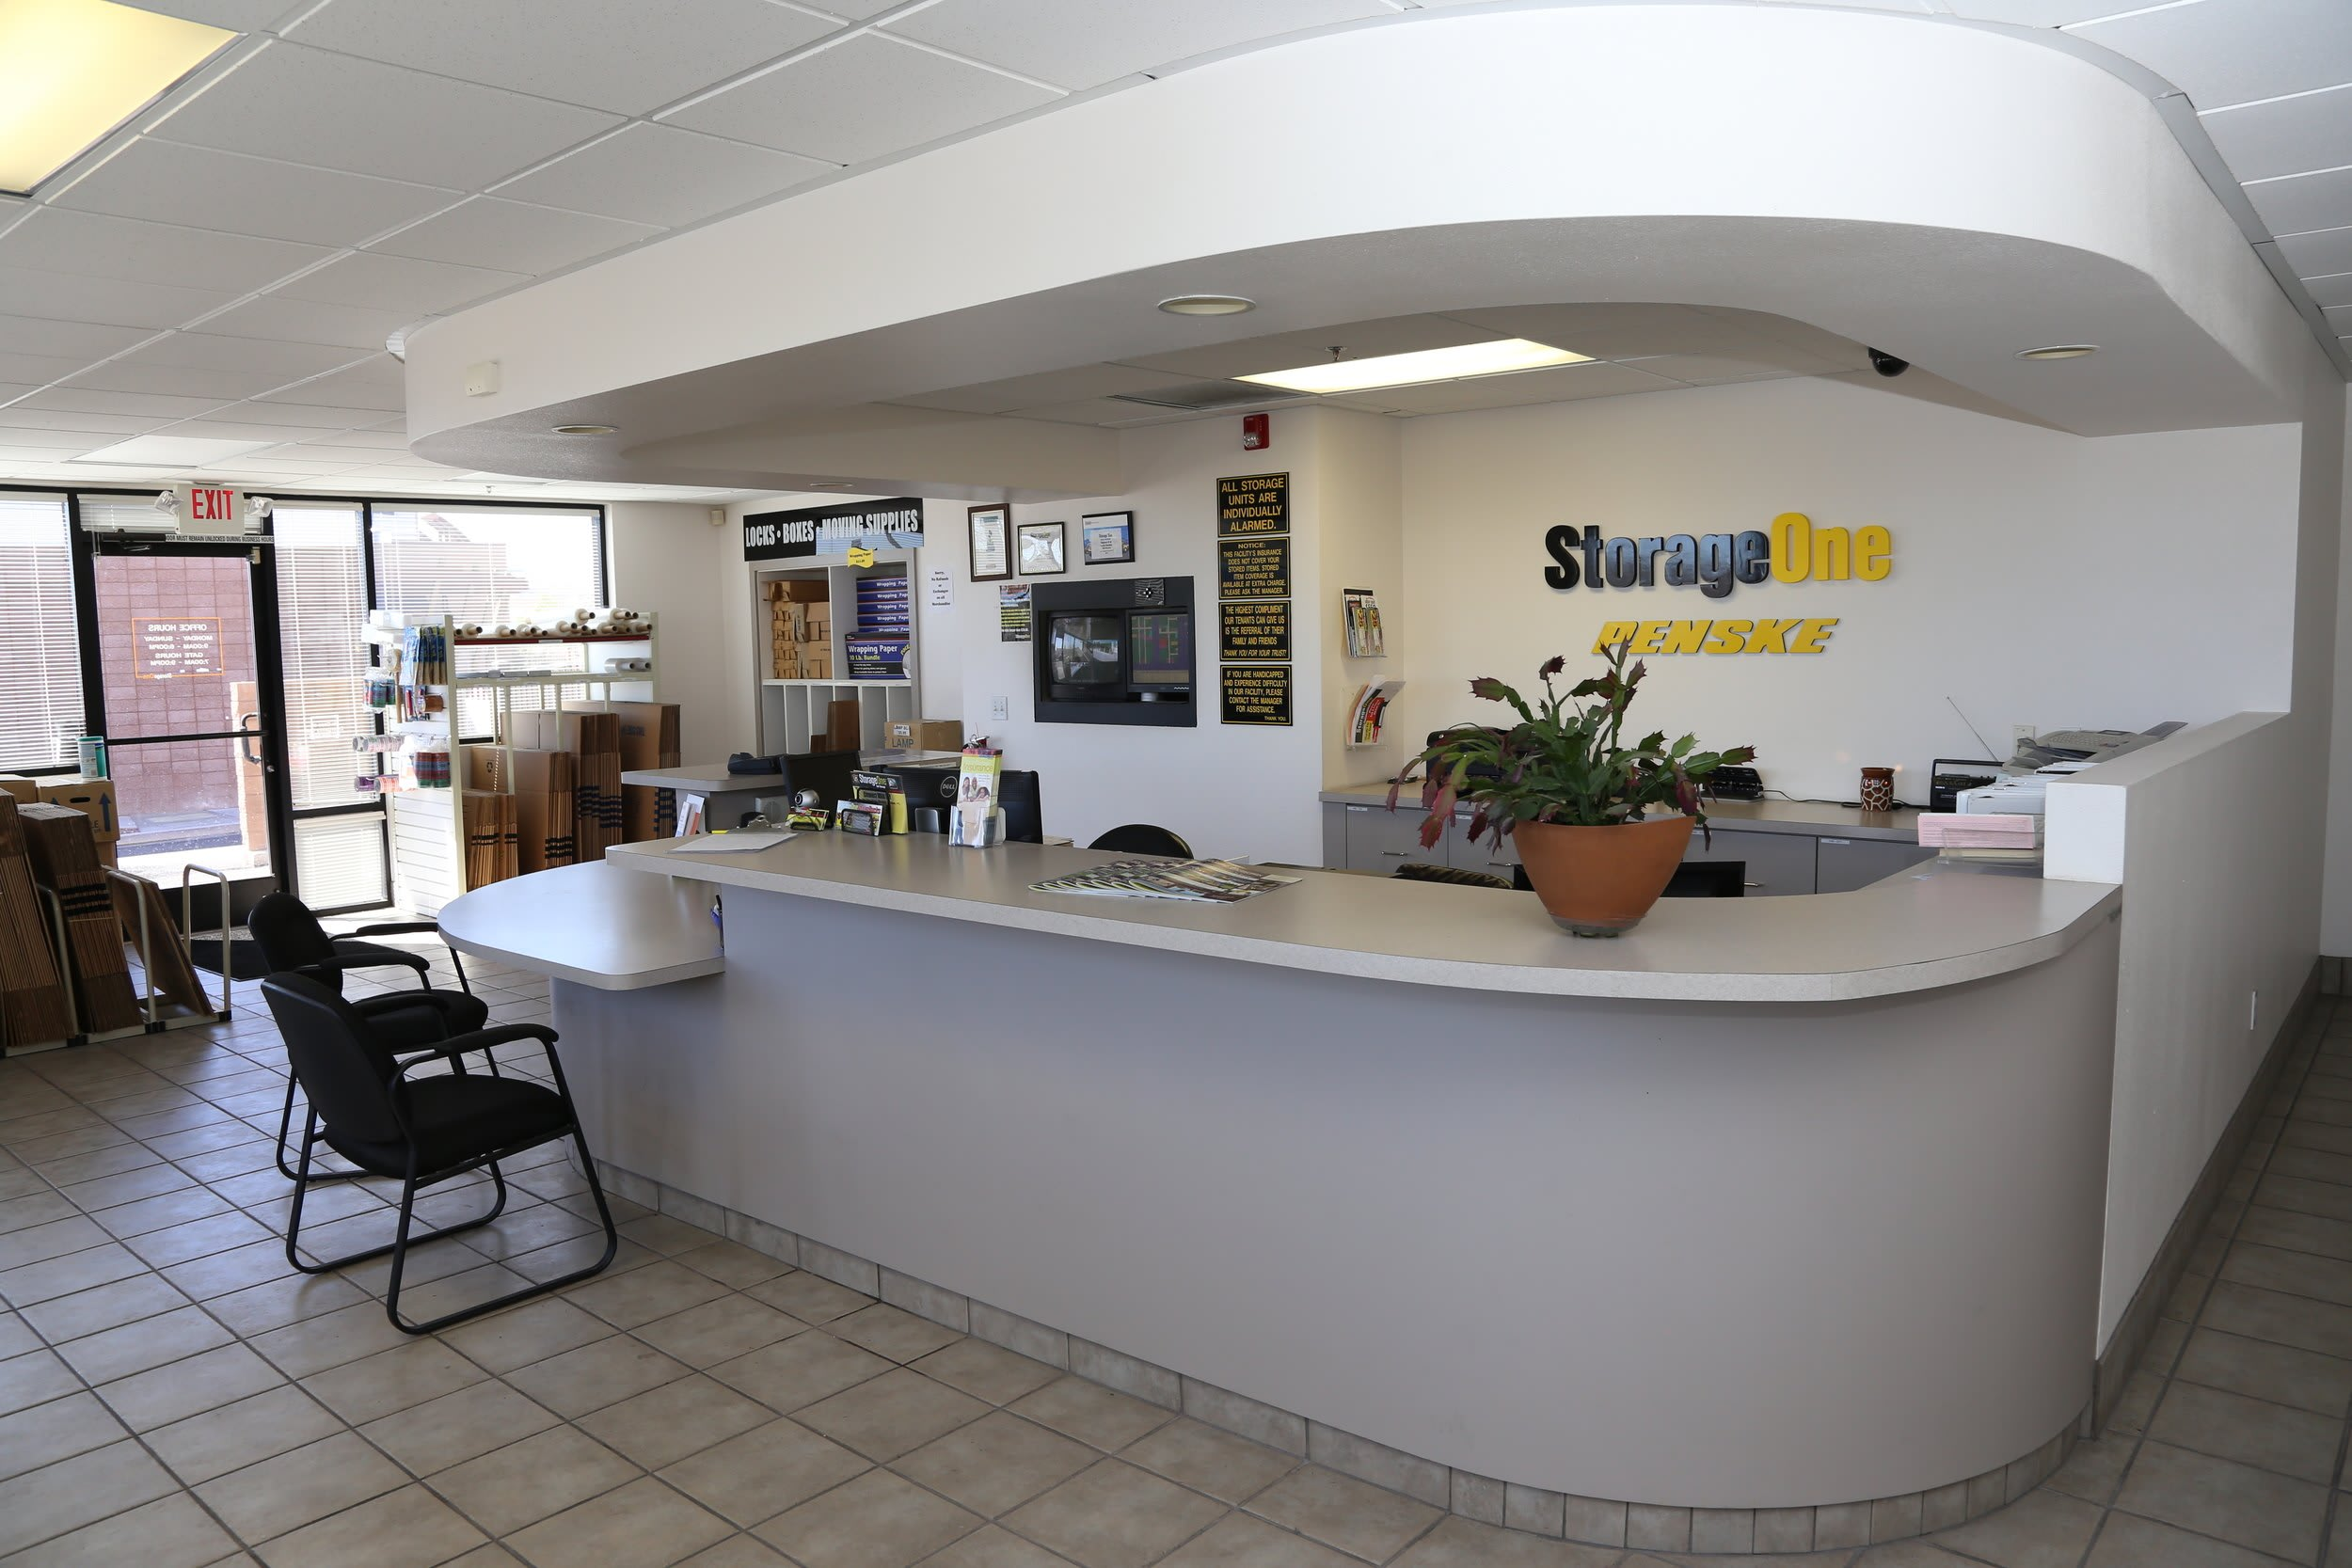 Contact StorageOne Mountain's Edge Blue Diamond & Durango to learn more about the web specials we have to offer